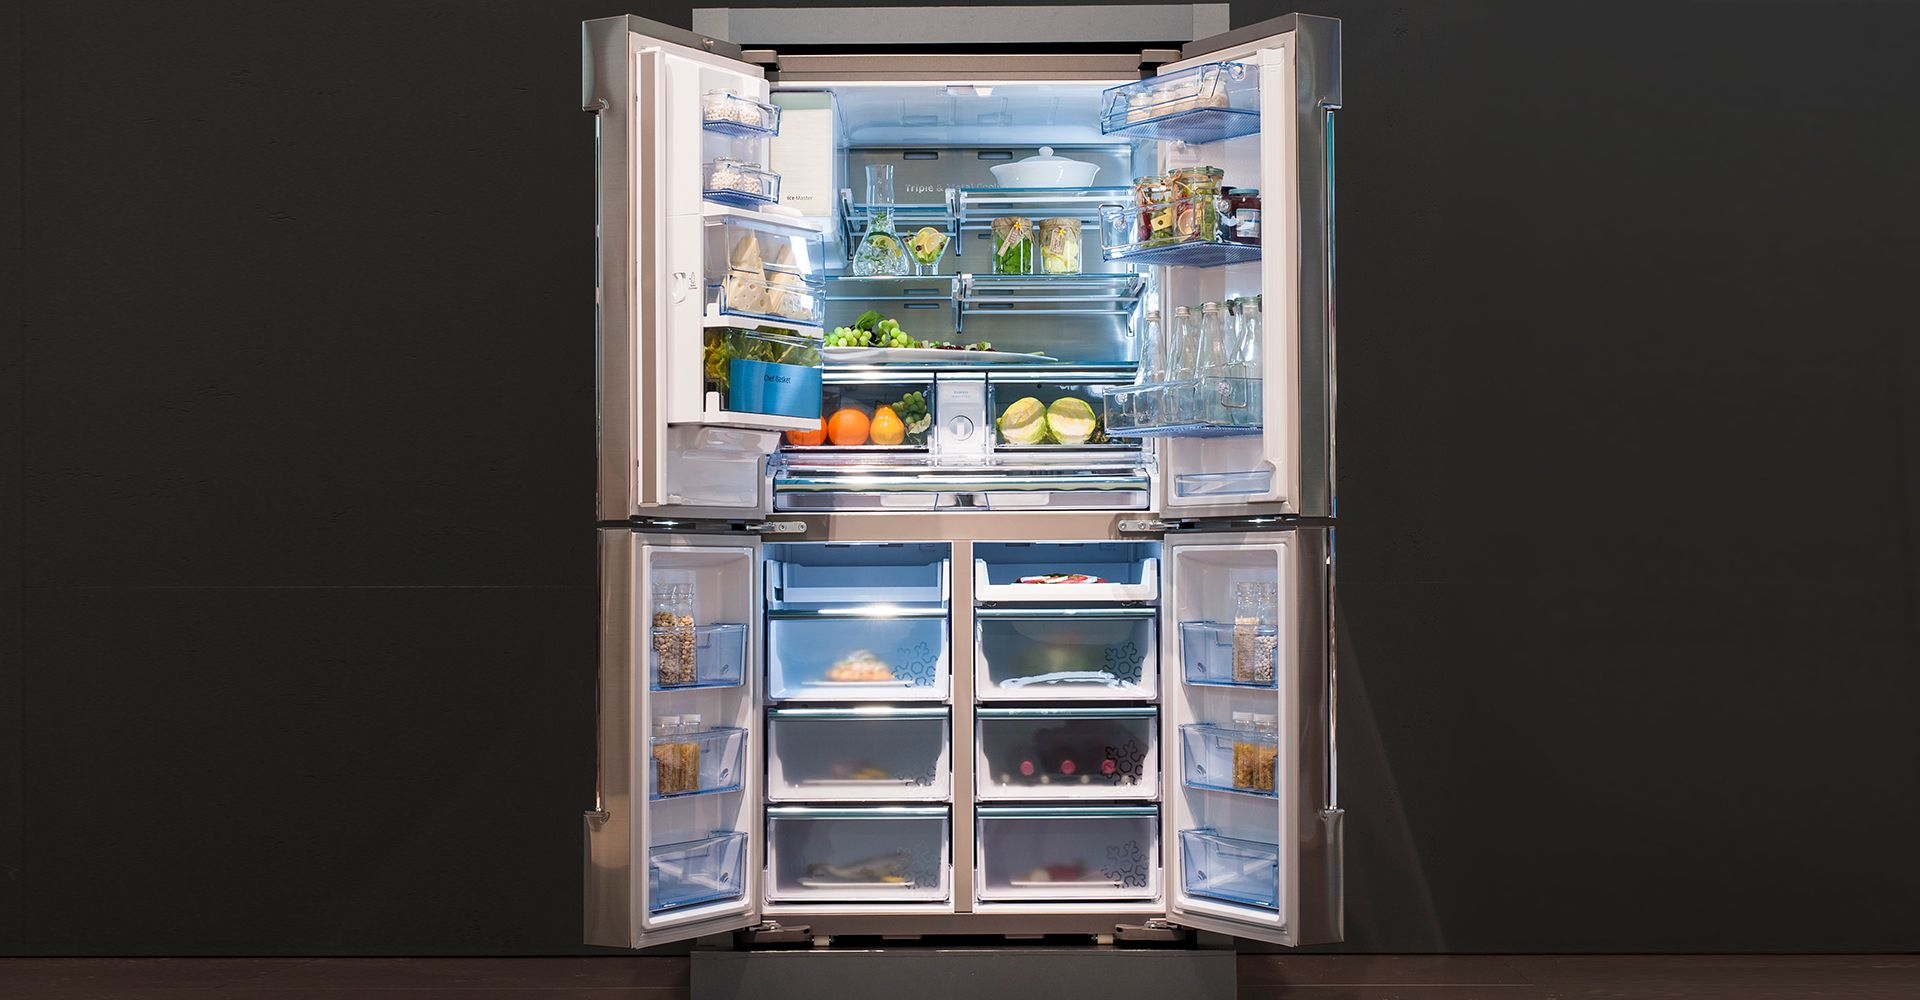 New Advanced Samsung Refrigerator with Technology Mode